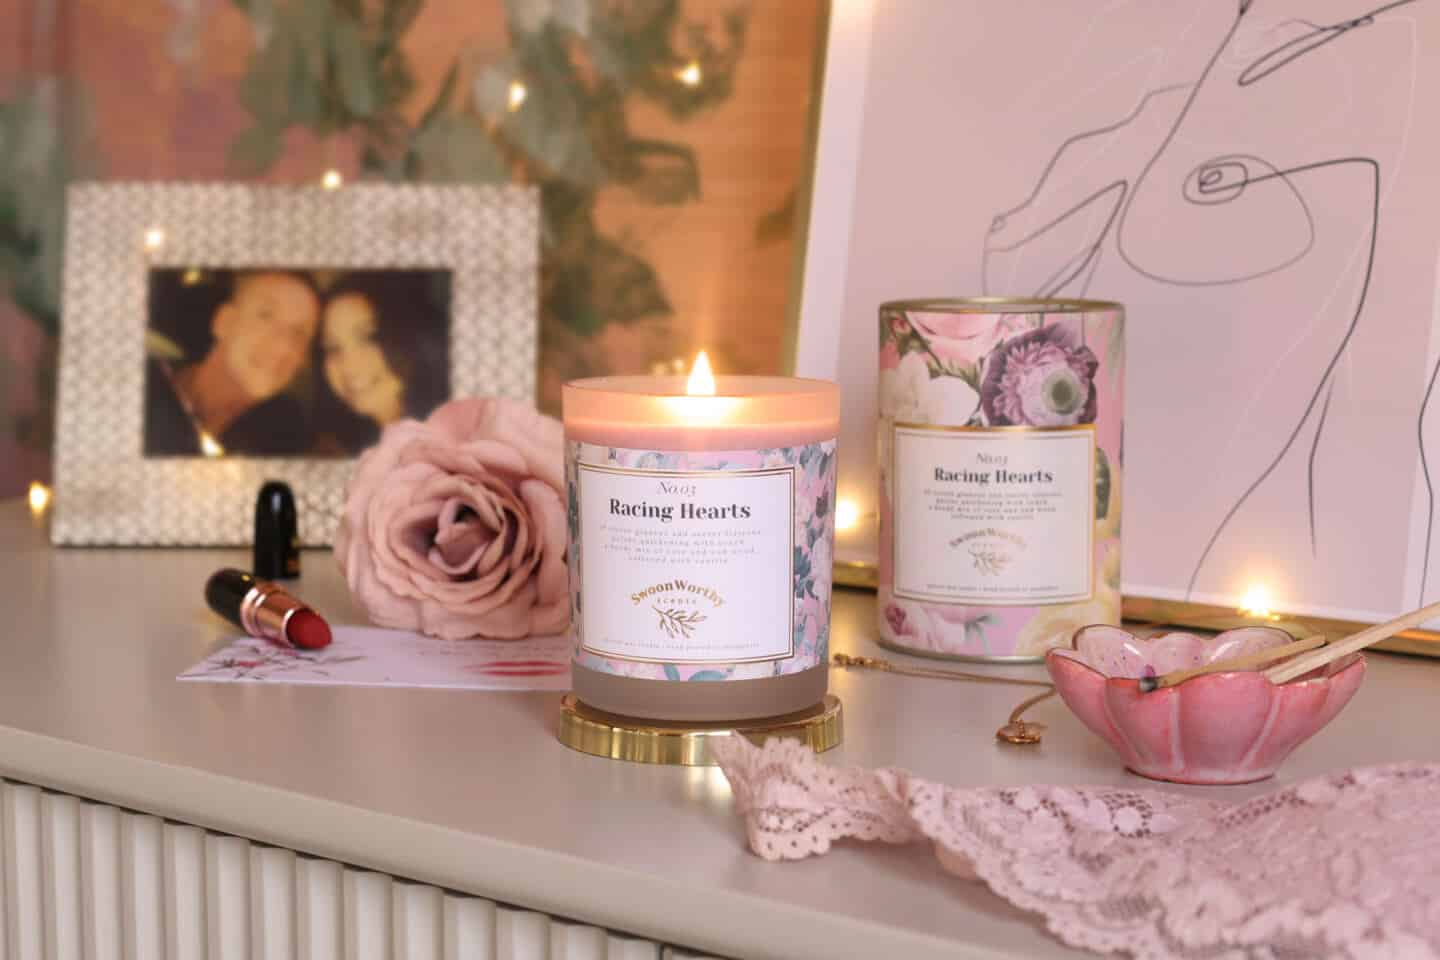 Racing Hearts, luxury eco-conscious scented candles by Swoon Worthy Scents on a chest of drawers in front of artwork and a photo of a couple.